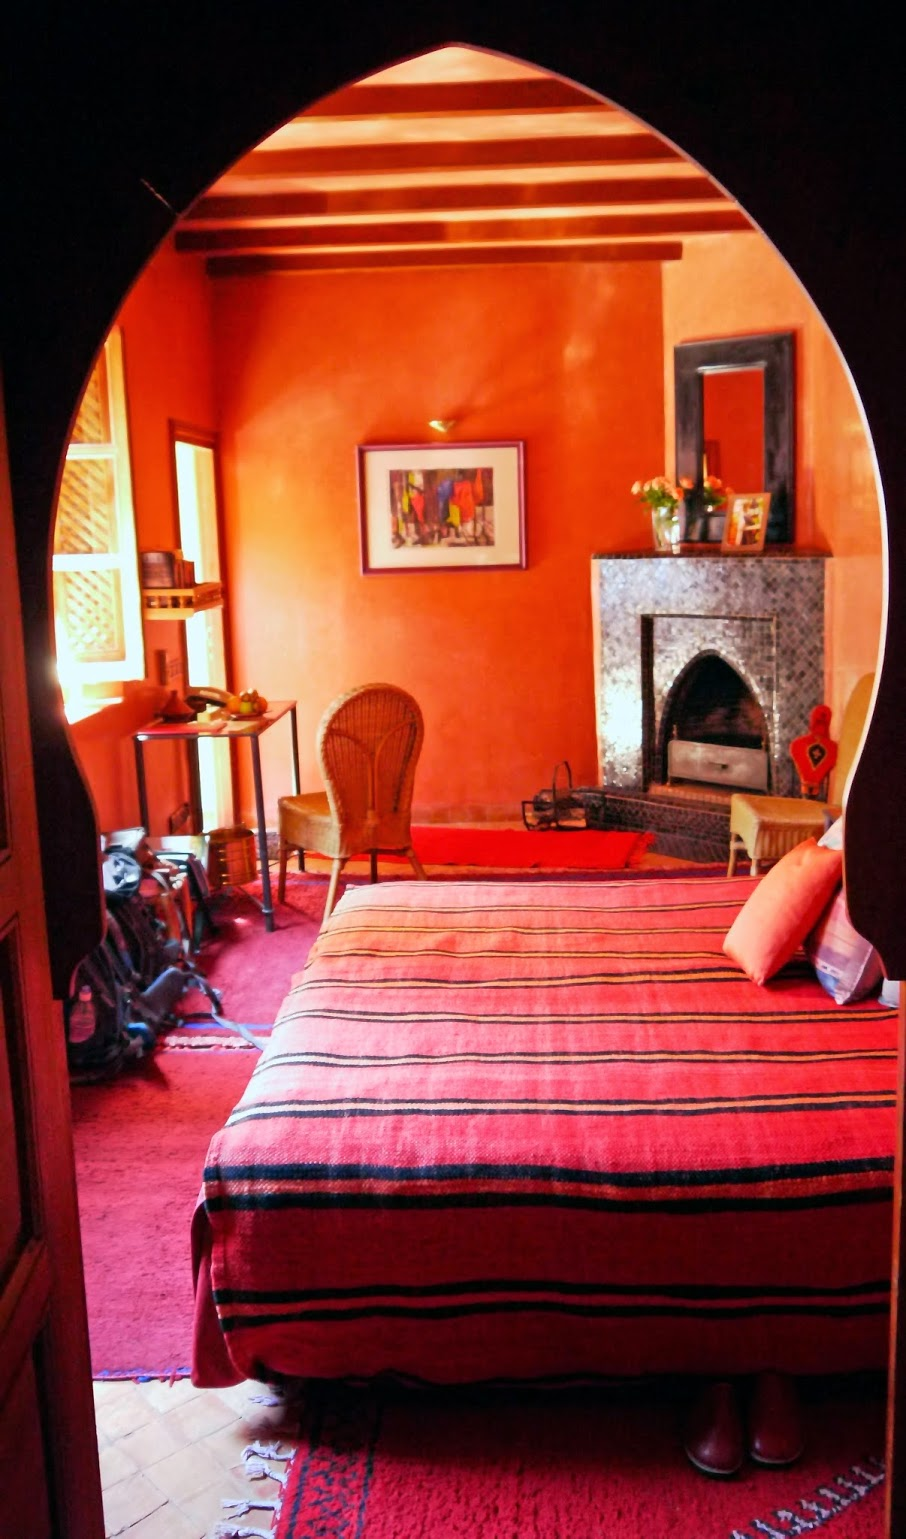 Riad Noga Red Room Marrakech Morocco